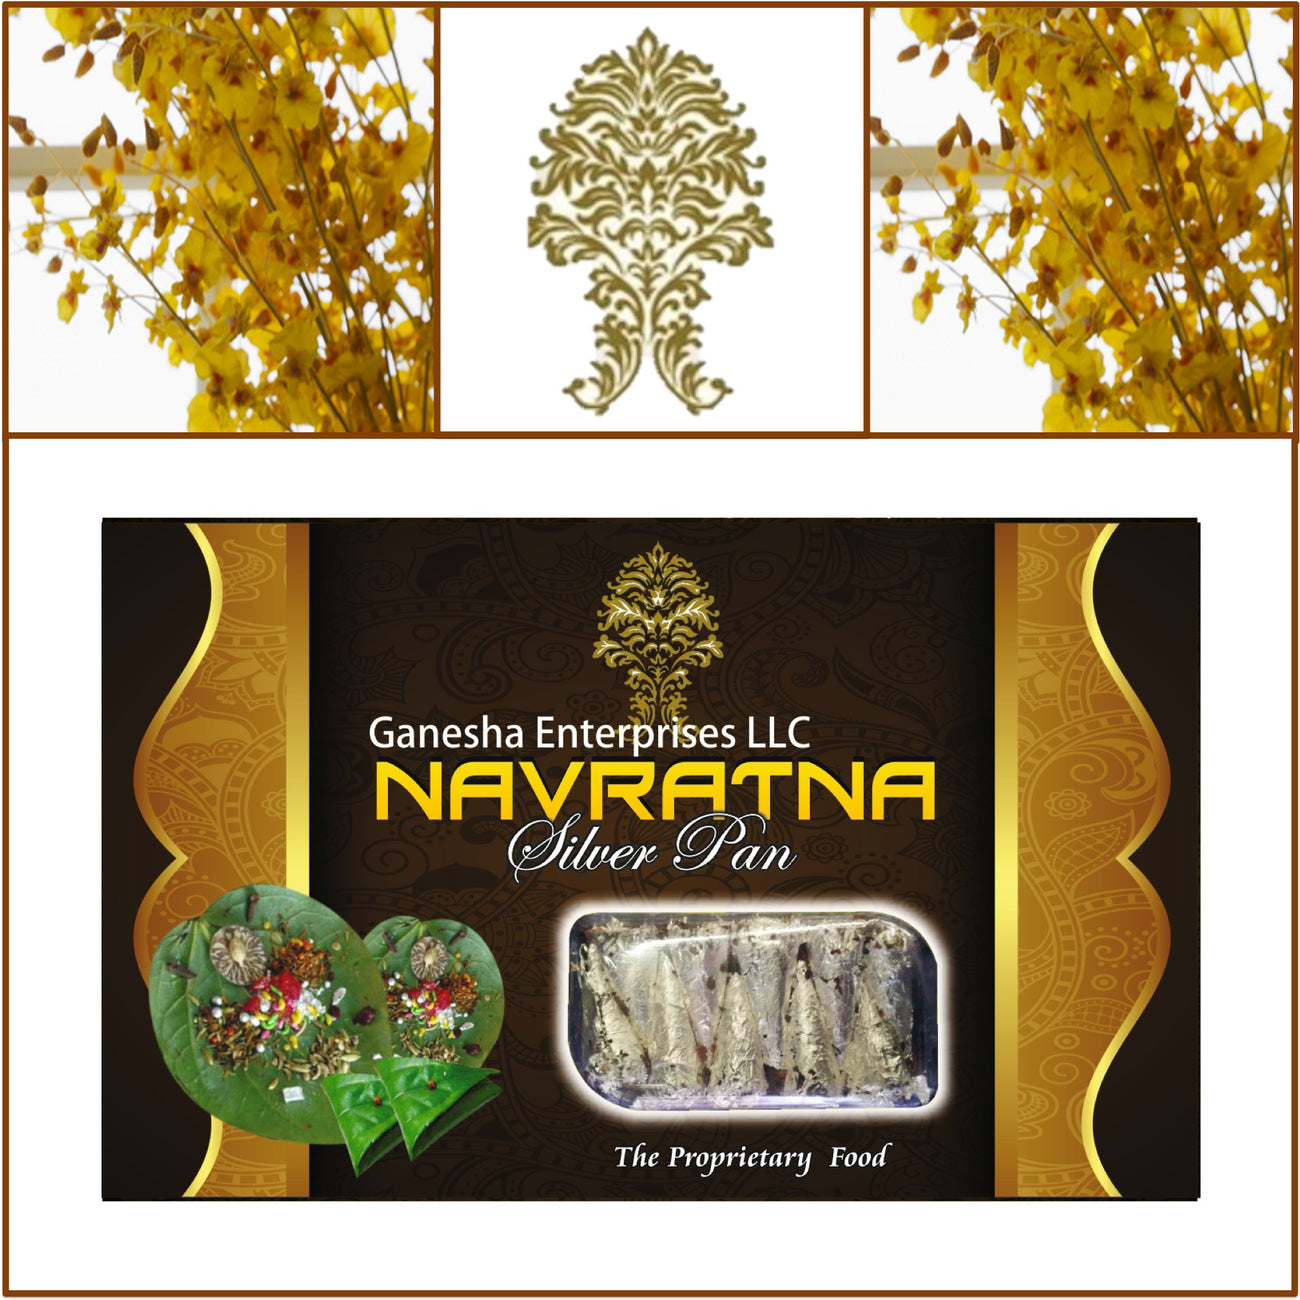 ONE Box Navratna Silver Pan (Paan) 10 Pieces Each